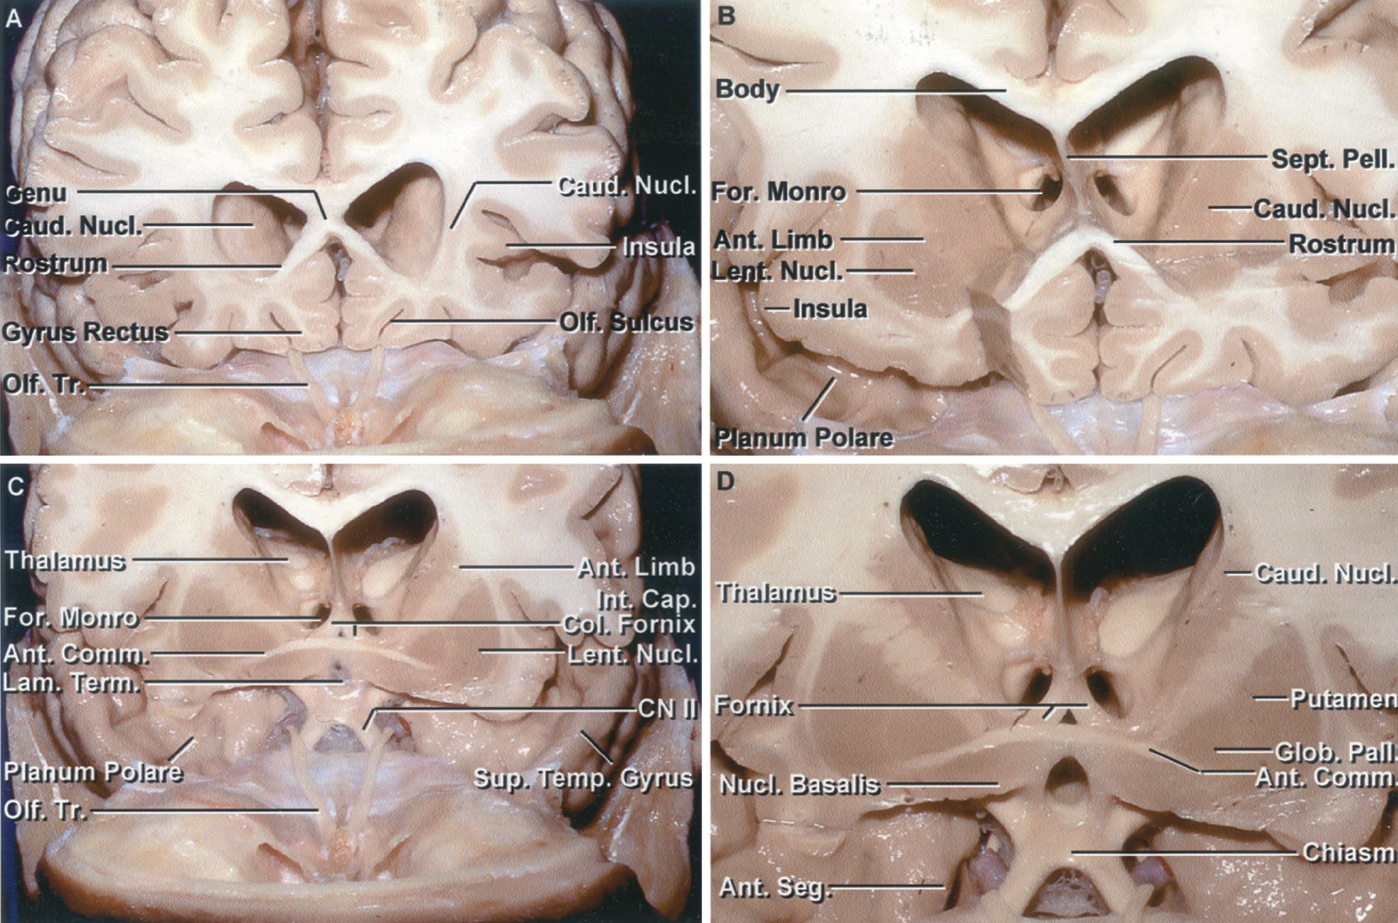 Figure 1.8 A-D. Stepwise dissection of the cerebral hemispheres, beginning anteriorly. A, coronal section at the level of the rostrum of the corpus callosum and anterior part of the frontal horn. The anterior wall and adjacent part of the roof of the frontal horn are formed by the genu of the corpus callosum, the floor by the rostrum, and the lateral wall by the caudate nucleus. The insular surface is small at this level. The gyrus rectus is located medial to the olfactory tracts. B, the section has been extended to the midportion of the frontal horn. The roof is formed by the body of the corpus callosum, the lateral wall by the caudate nucleus, the floor by the rostrum, and the medial wall by the septum pellucidum. The anterior limb of the internal capsule passes between the caudate and the lentiform nuclei. The caudate nucleus blends into the lentiform nucleus in the area below the anterior limb of the internal capsule. The planum polare on the upper surface of the anterior part of the temporal lobe is devoid of gyri and has a shallow trough along which the middle cerebral artery courses. C, the cross section has been extended posteriorly to the level of the lamina terminalis and the anterior commissure. The columns of the fornix pass around the anterior and superior margin of the foramen of Monro and turn downward behind the lamina terminalis toward the mamillary bodies. At this level, the lentiform nucleus has taken on its characteristic triangular or lens shape in cross section. D, enlarged view. The lamina terminalis has been opened. The anterior limb of the internal capsule separates the caudate and lentiform nuclei. The lentiform nucleus is formed by the putamen and globus pallidus. The anteroinferior part of the caudate and lentiform nuclei blends without clear demarcation into the large mass of gray matter above the anterior perforated substance and adjacent part of the orbital surface of the frontal lobe that also includes the nucleus basalis and accumbens. The nucleus basalis is located below the anterior commissure and the accumbens is located anterior to the basalis without clear demarcation between these two nuclei or the adjacent part of the lentiform and caudate nuclei. The anterior segment of the uncus is exposed lateral to the carotid artery.